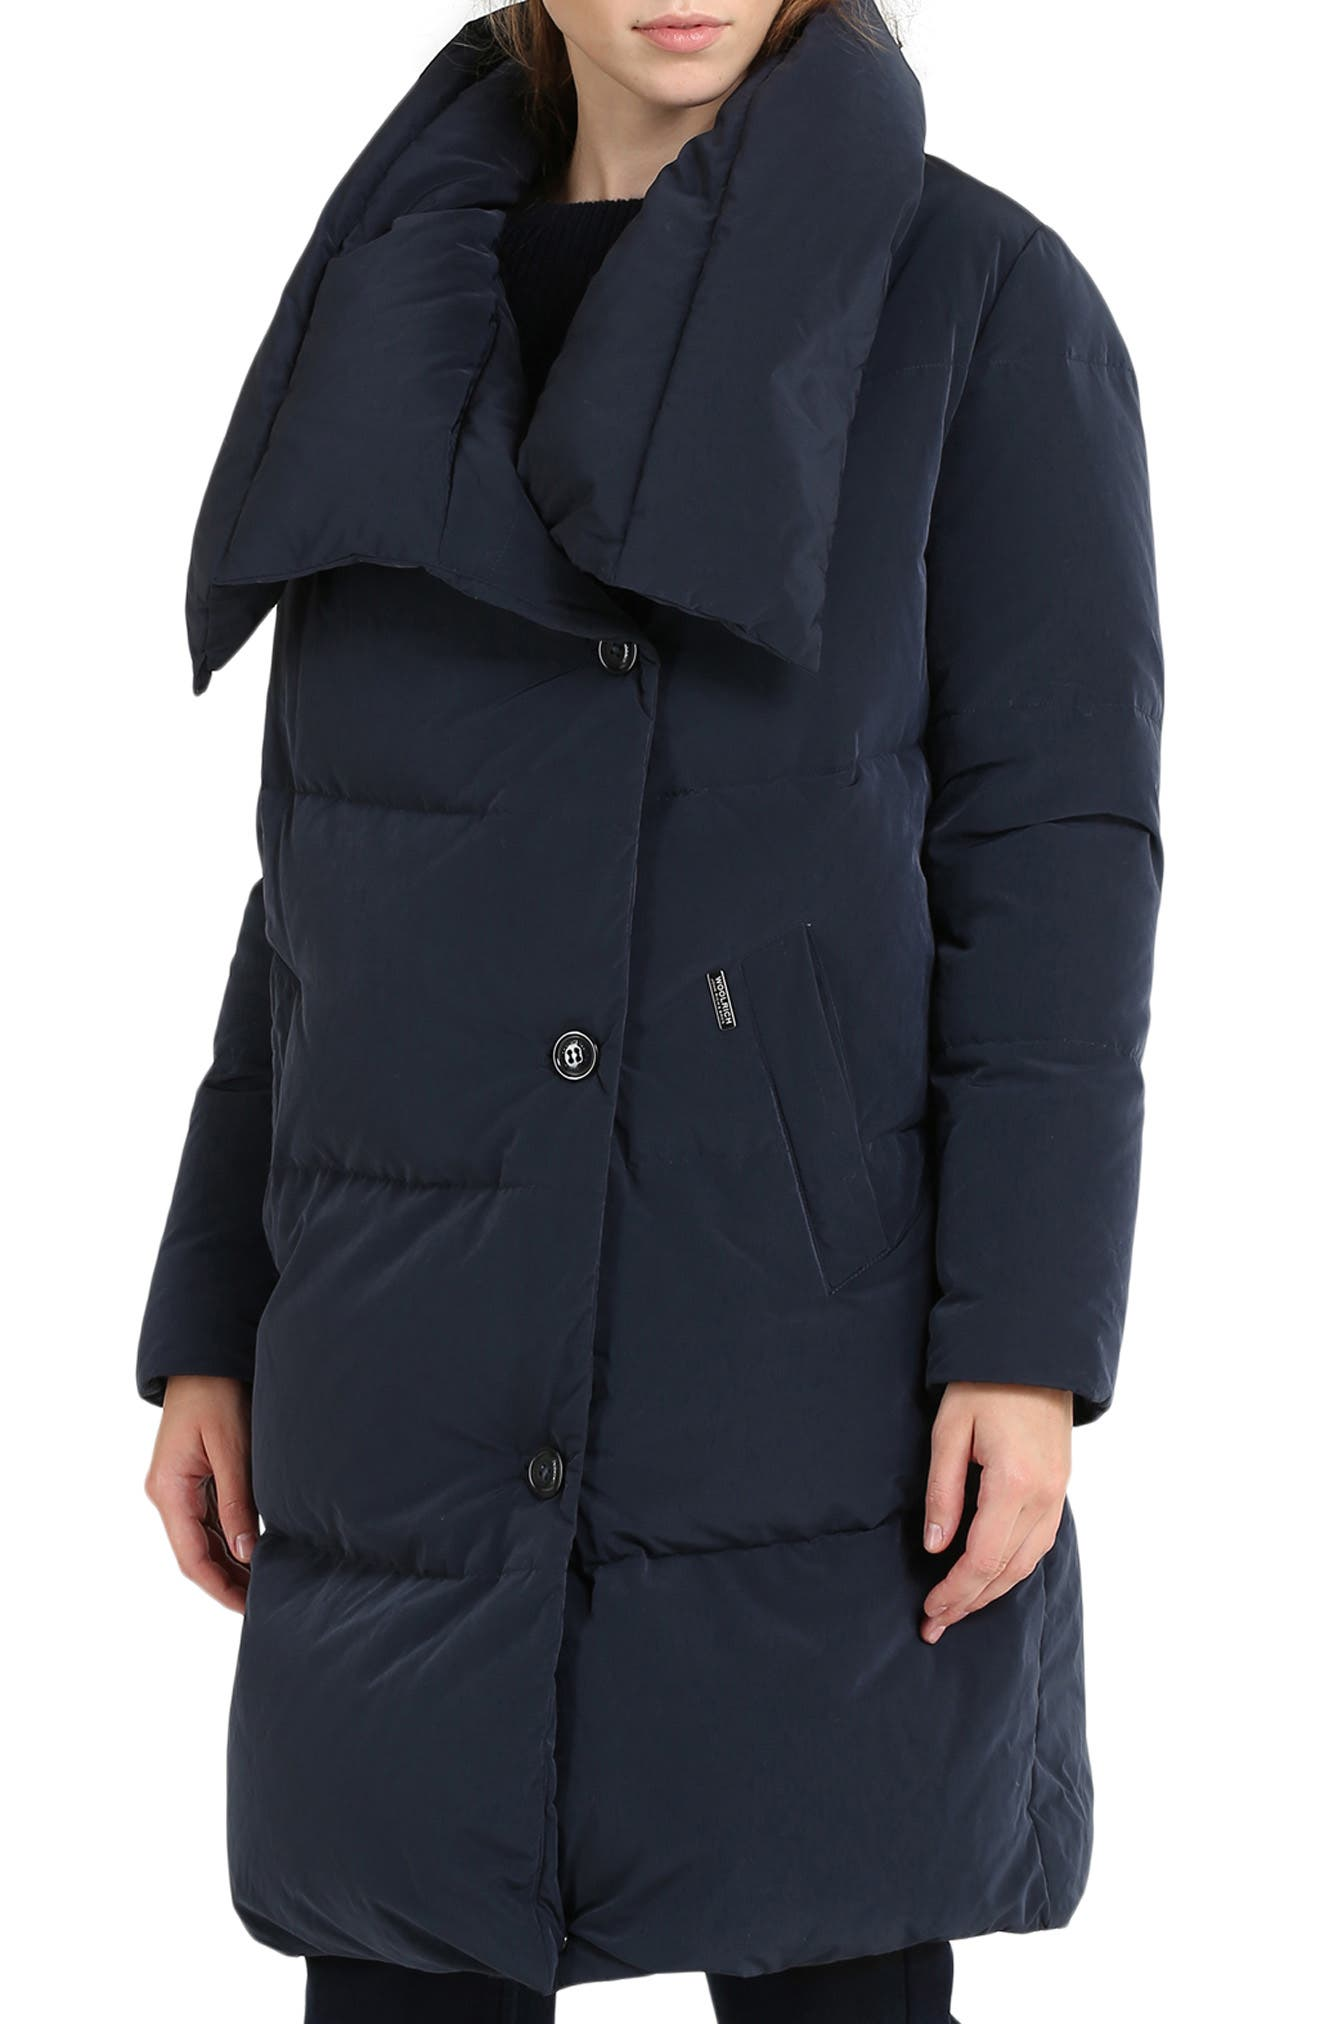 Puffy Down Coat,                         Main,                         color, MELTON BLUE